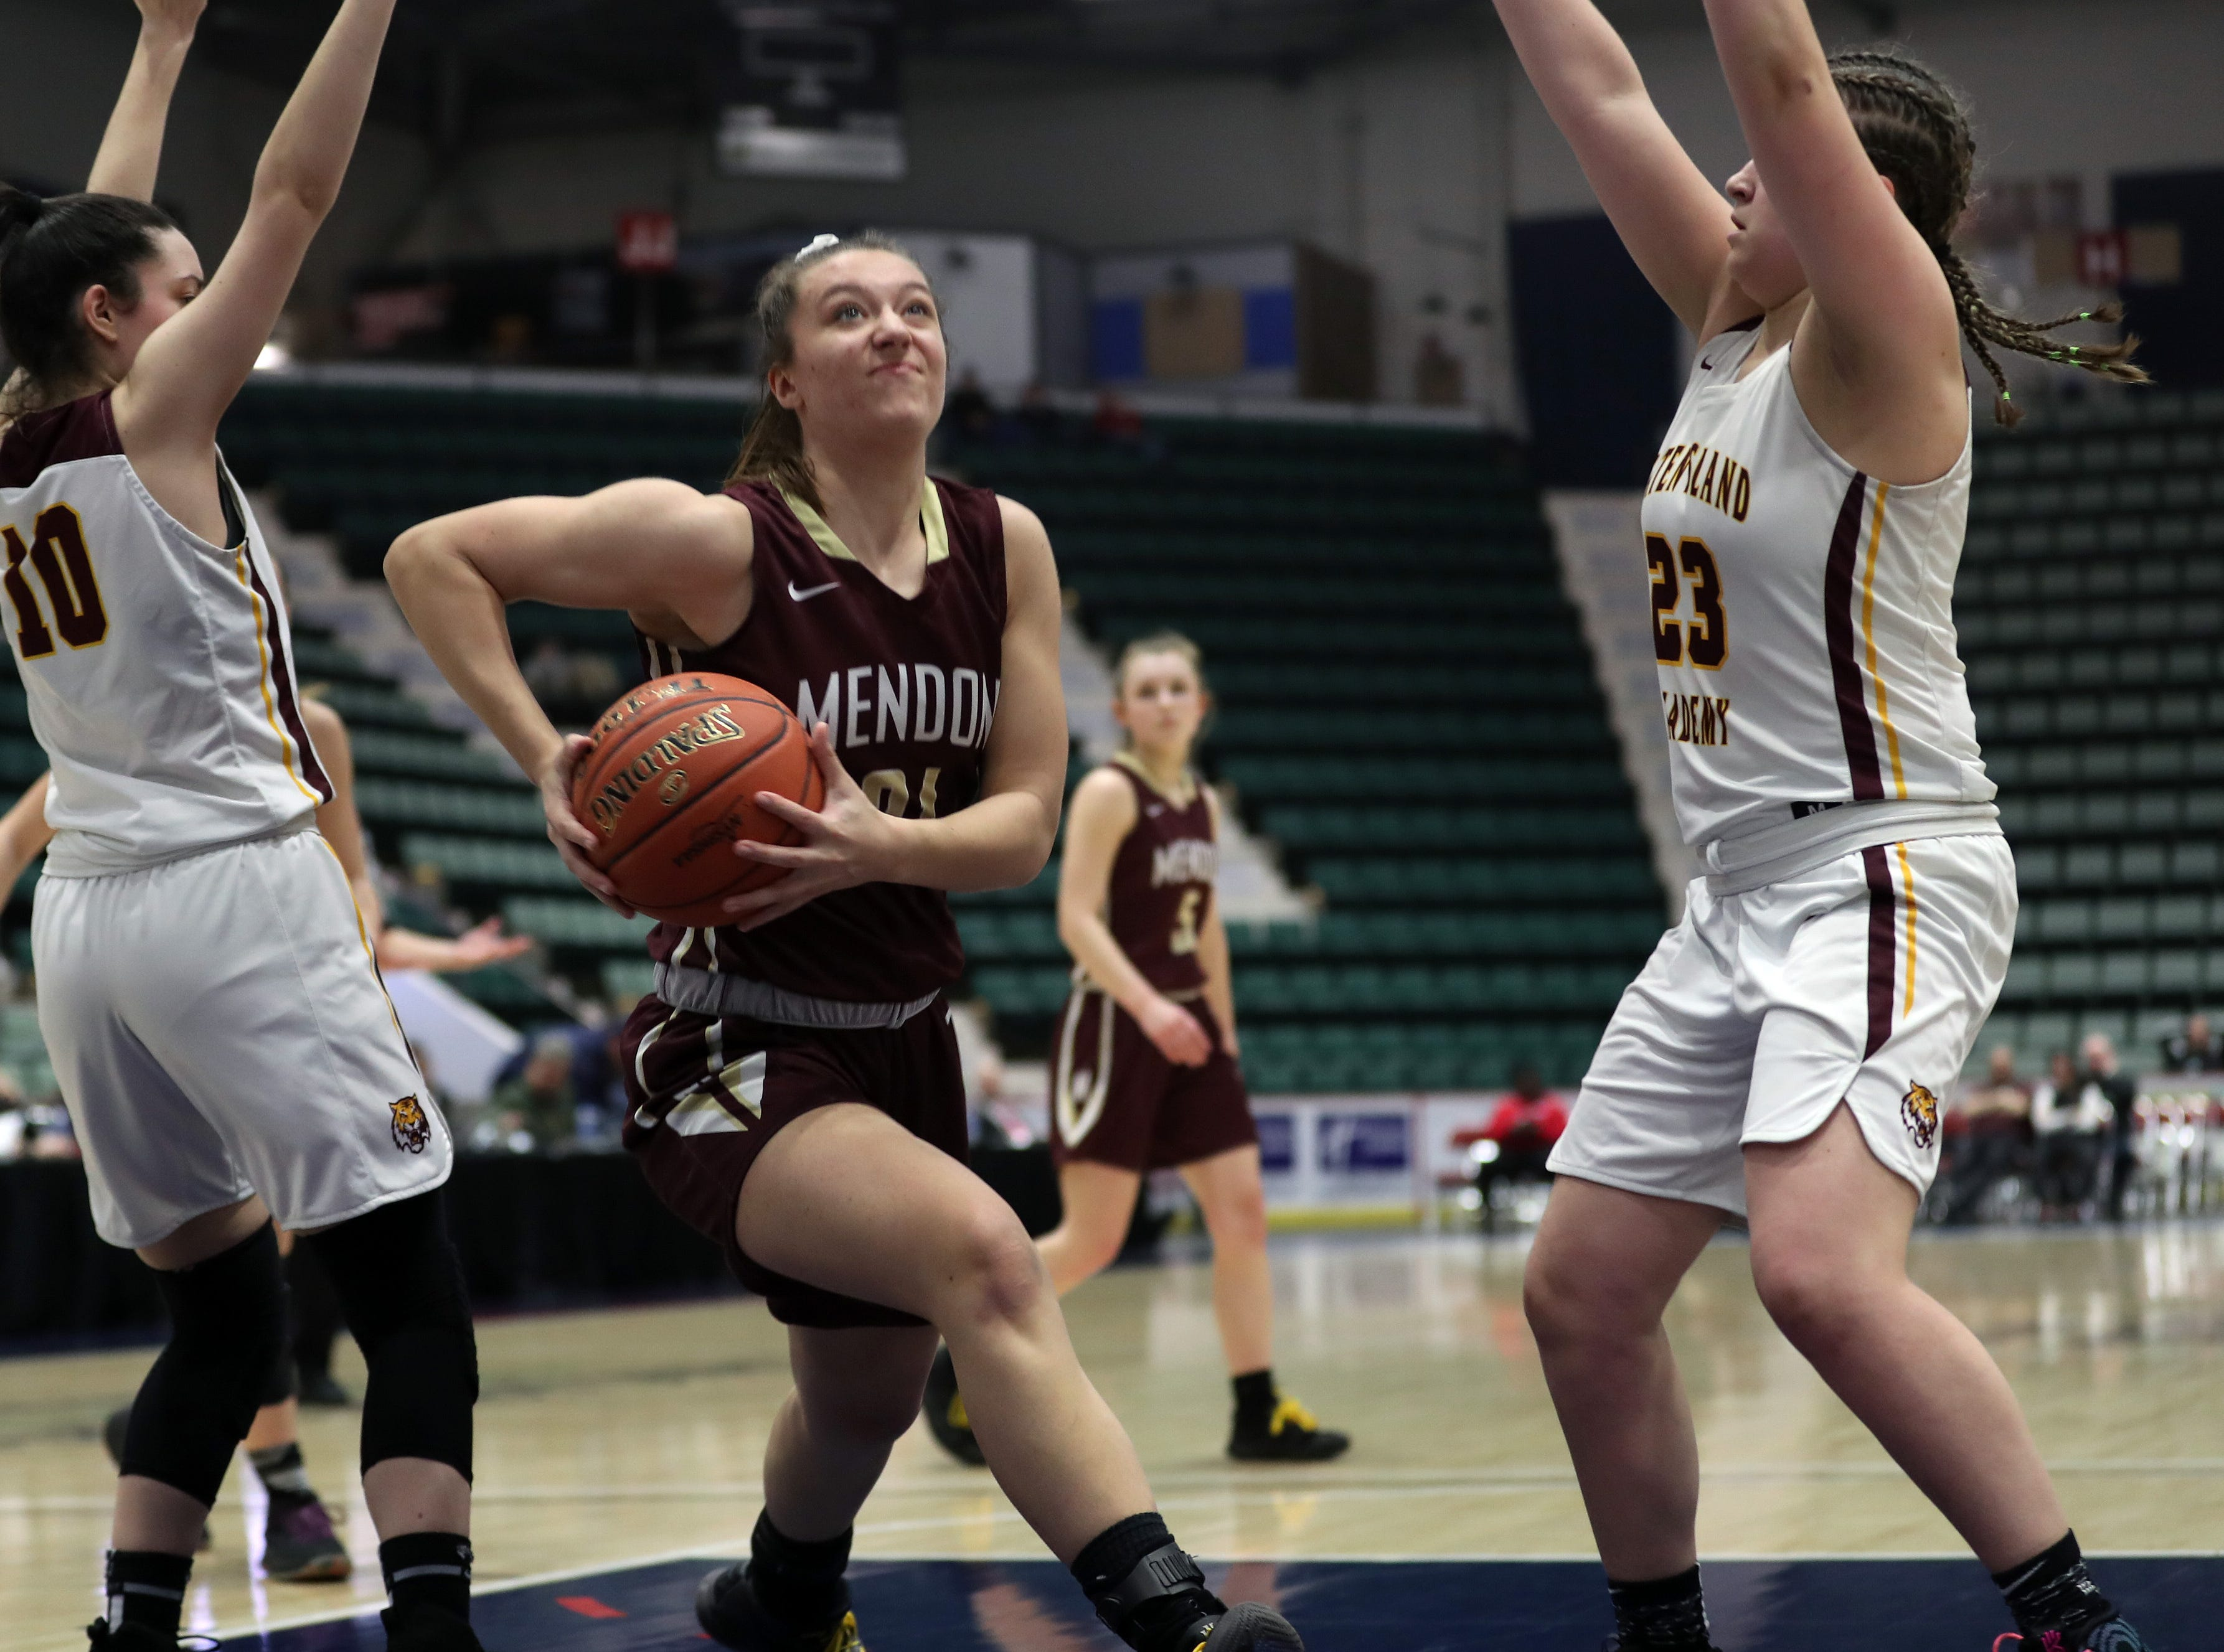 Pittsford Mendon's Alana Fursman (21) drives to the basket against Staten Island in the championship game of the Federation Tournament at the Cool Insuring Arena in Glens Falls March 23, 2019.